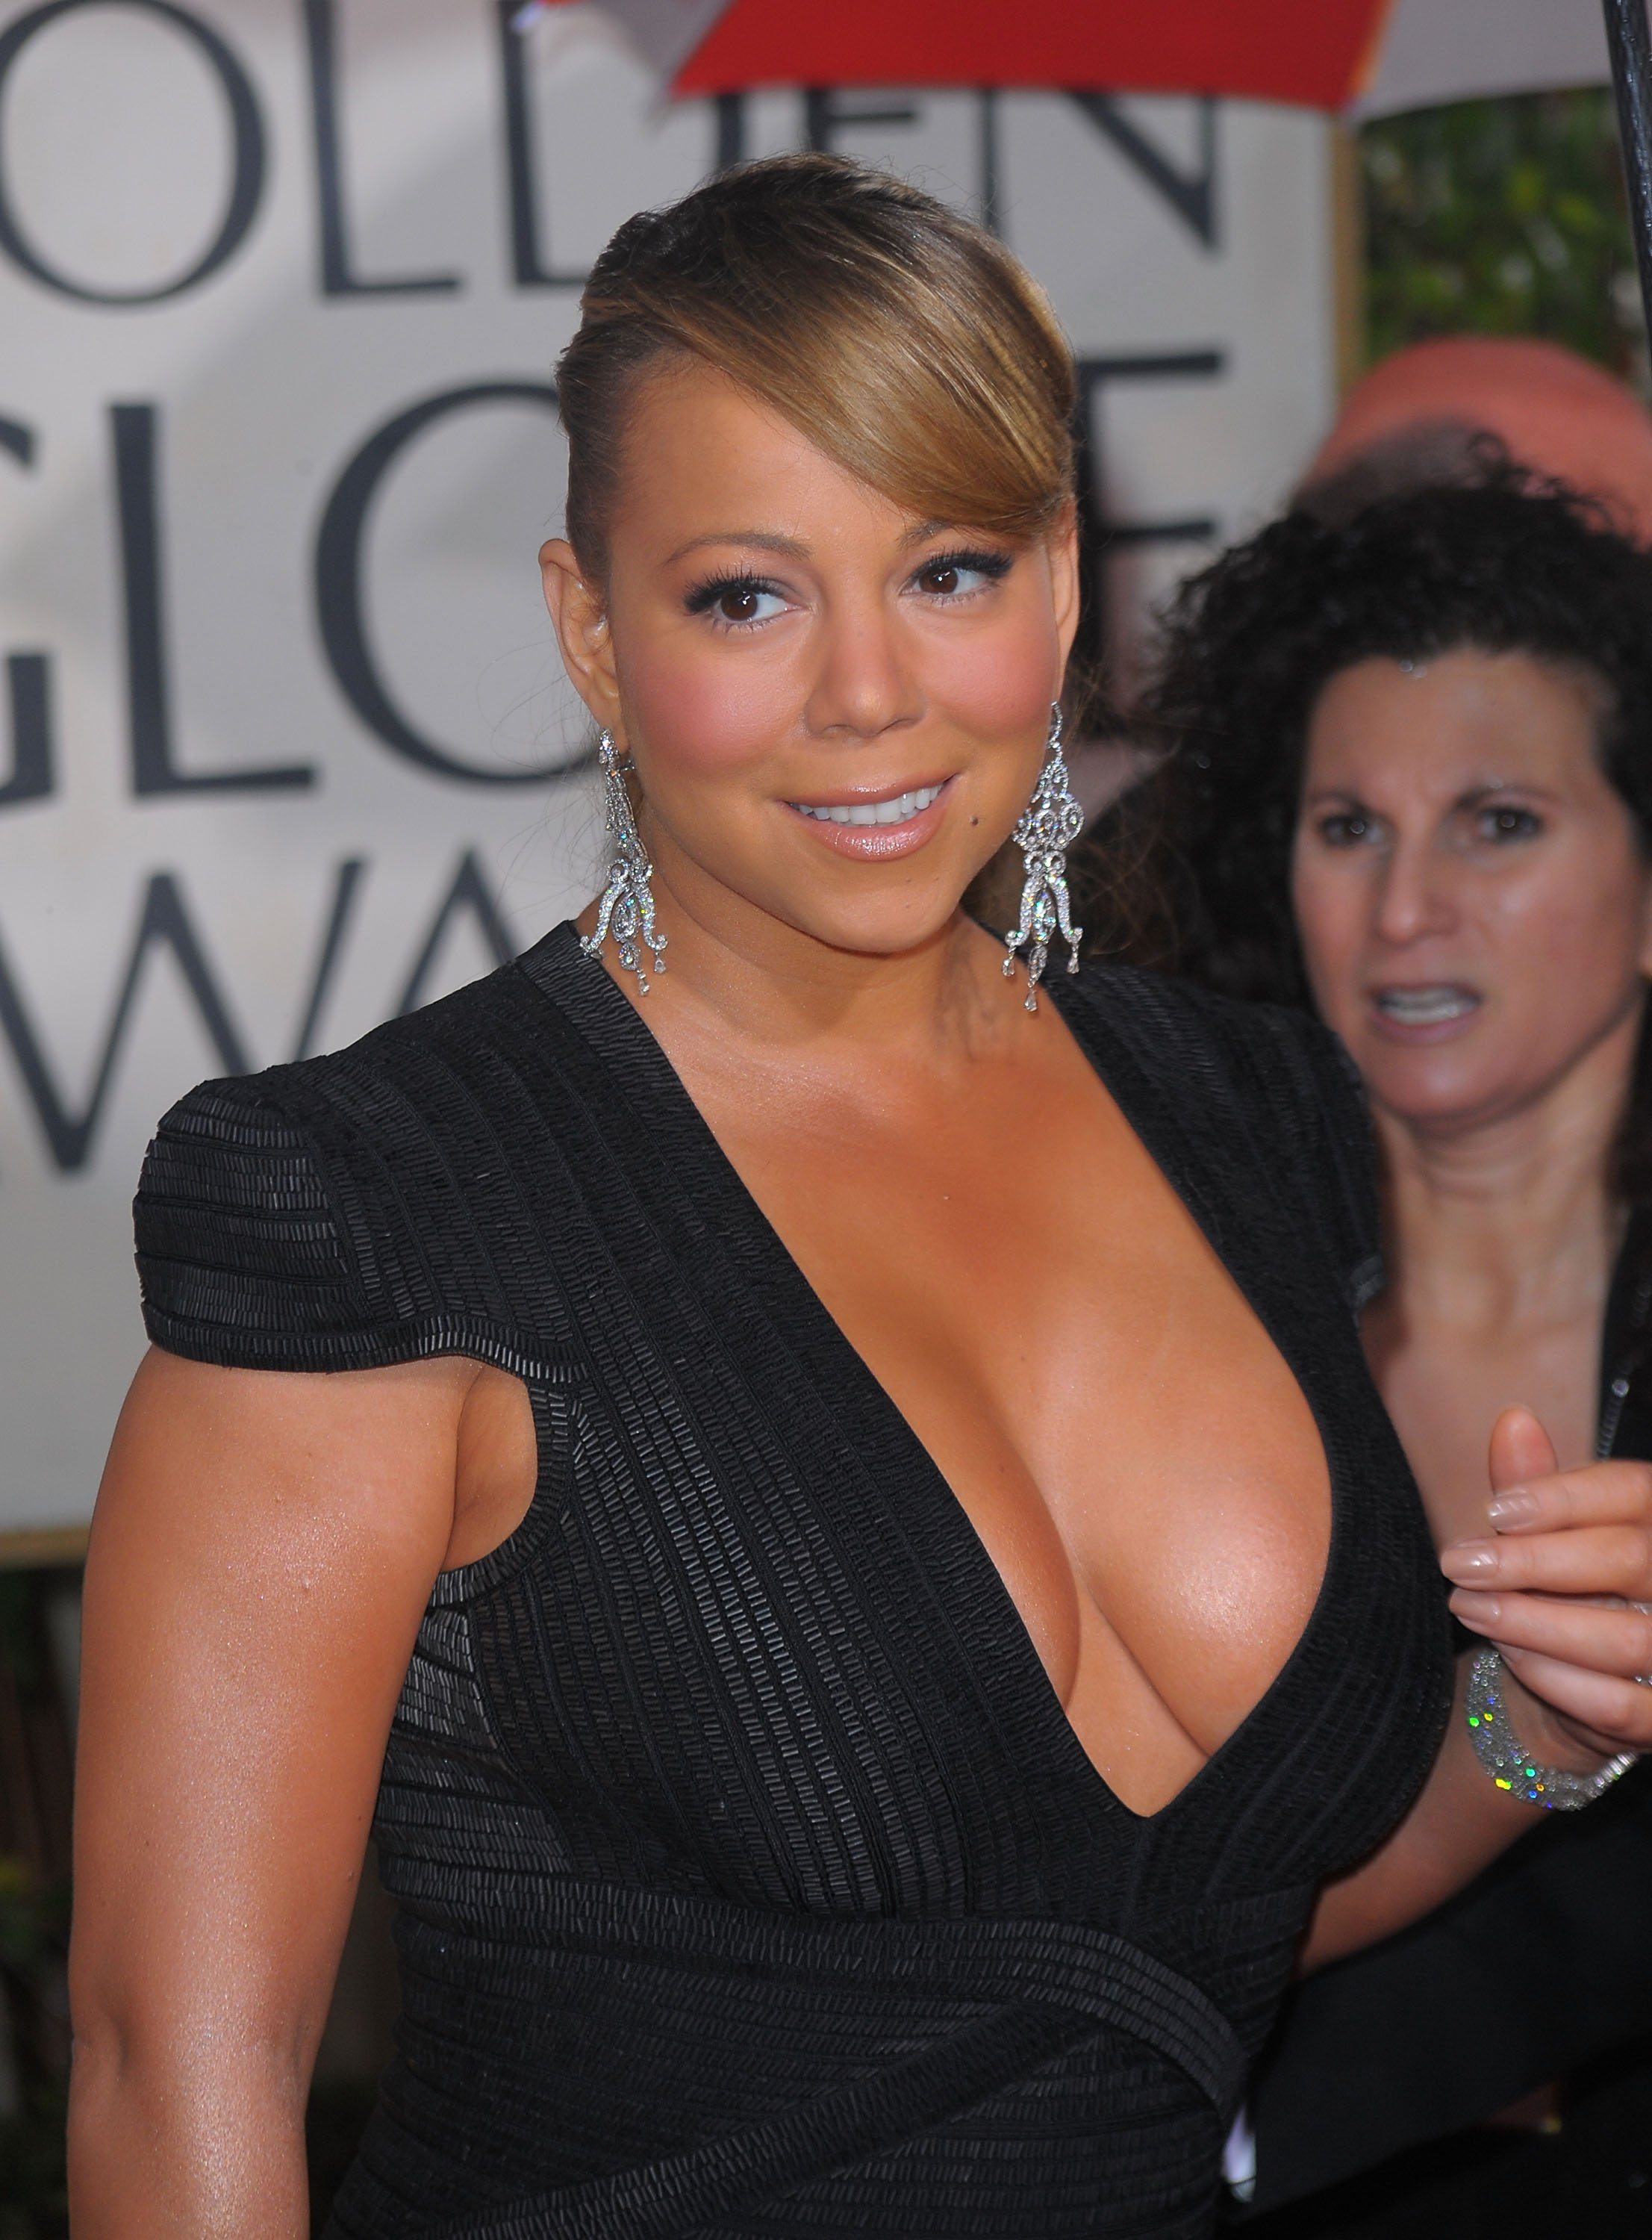 79356_Mariah_Carey_arrives_at_the_67th_Annual_Golden_Globe_Awards_321_122_700lo.jpg